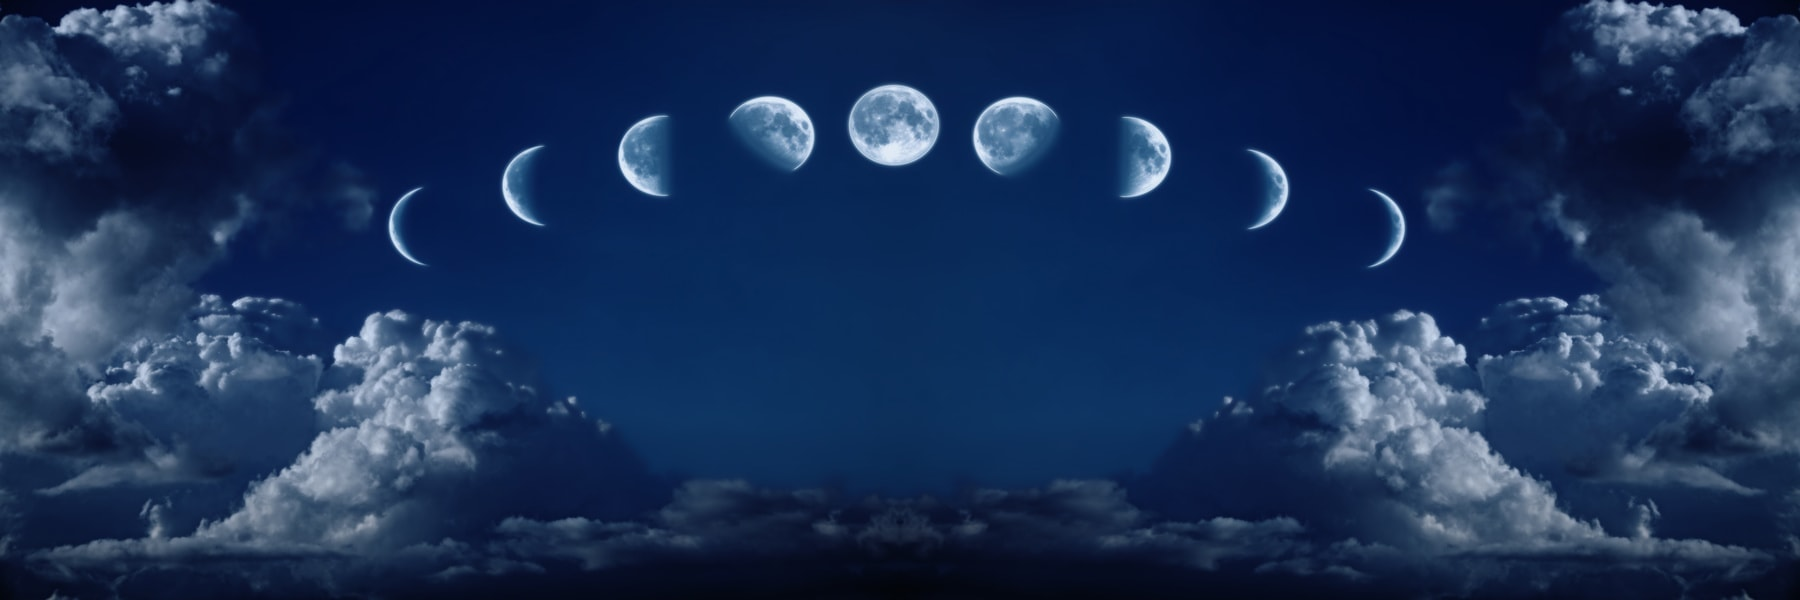 Nine phases of the full growth cycle of the moon isolated in the night sky with clouds